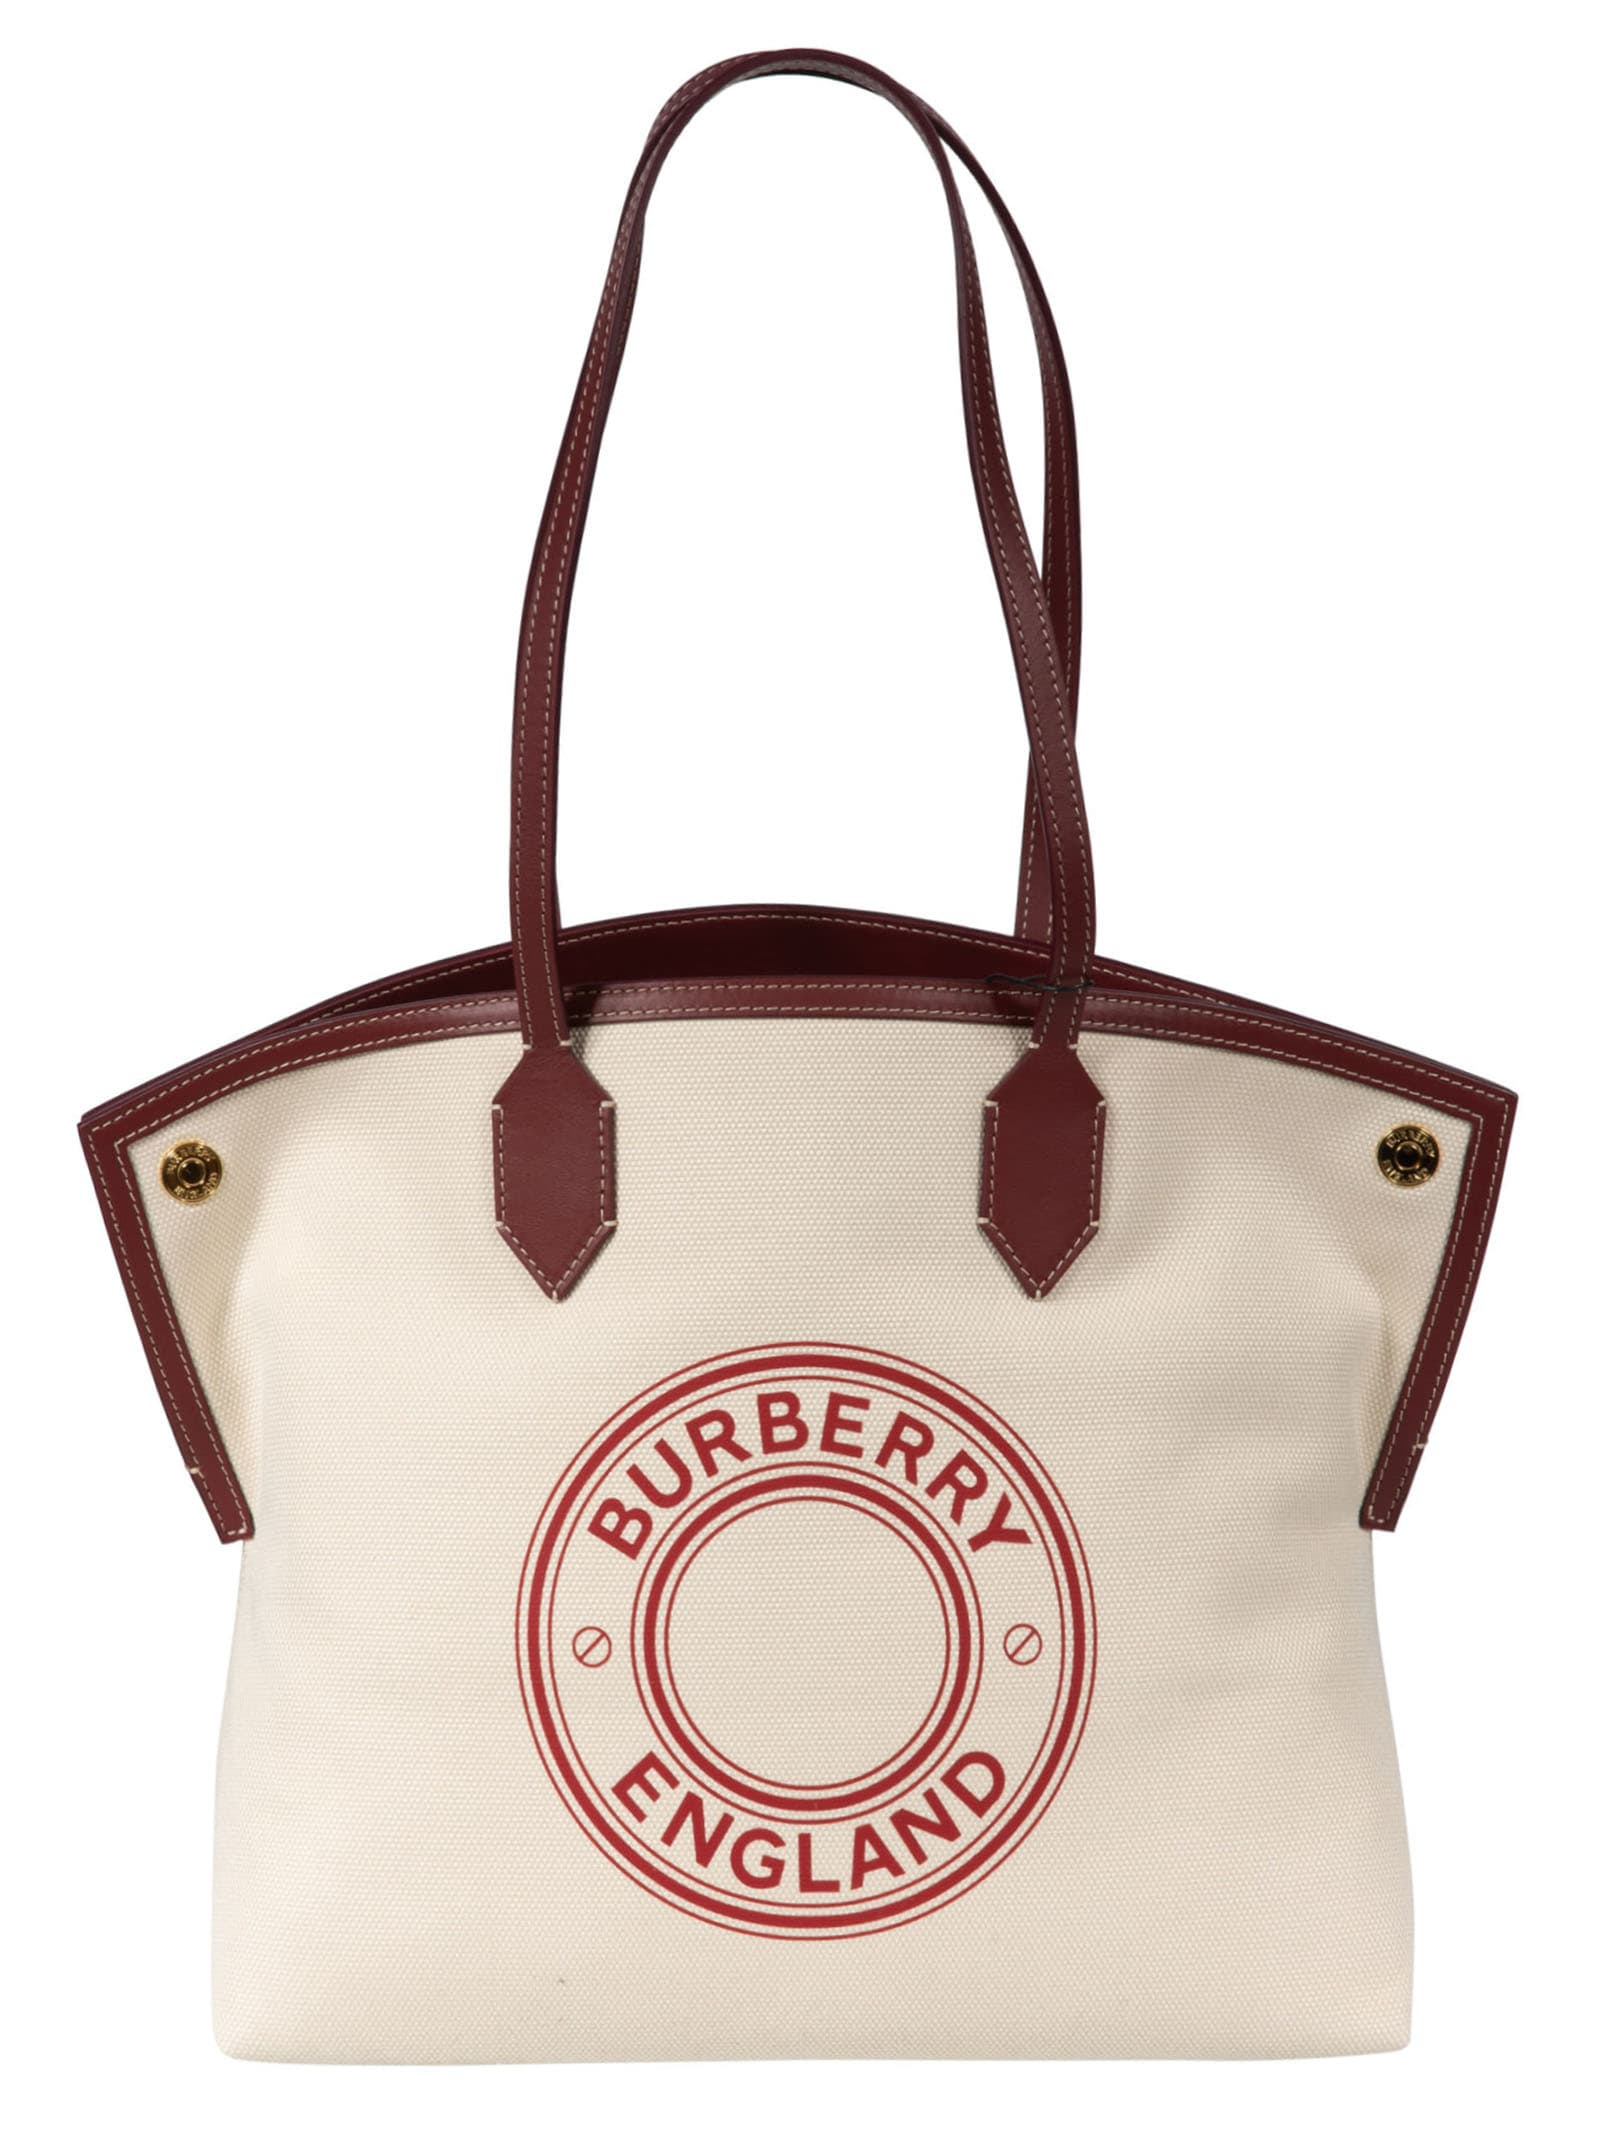 Burberry Logo Print Tote In White/red